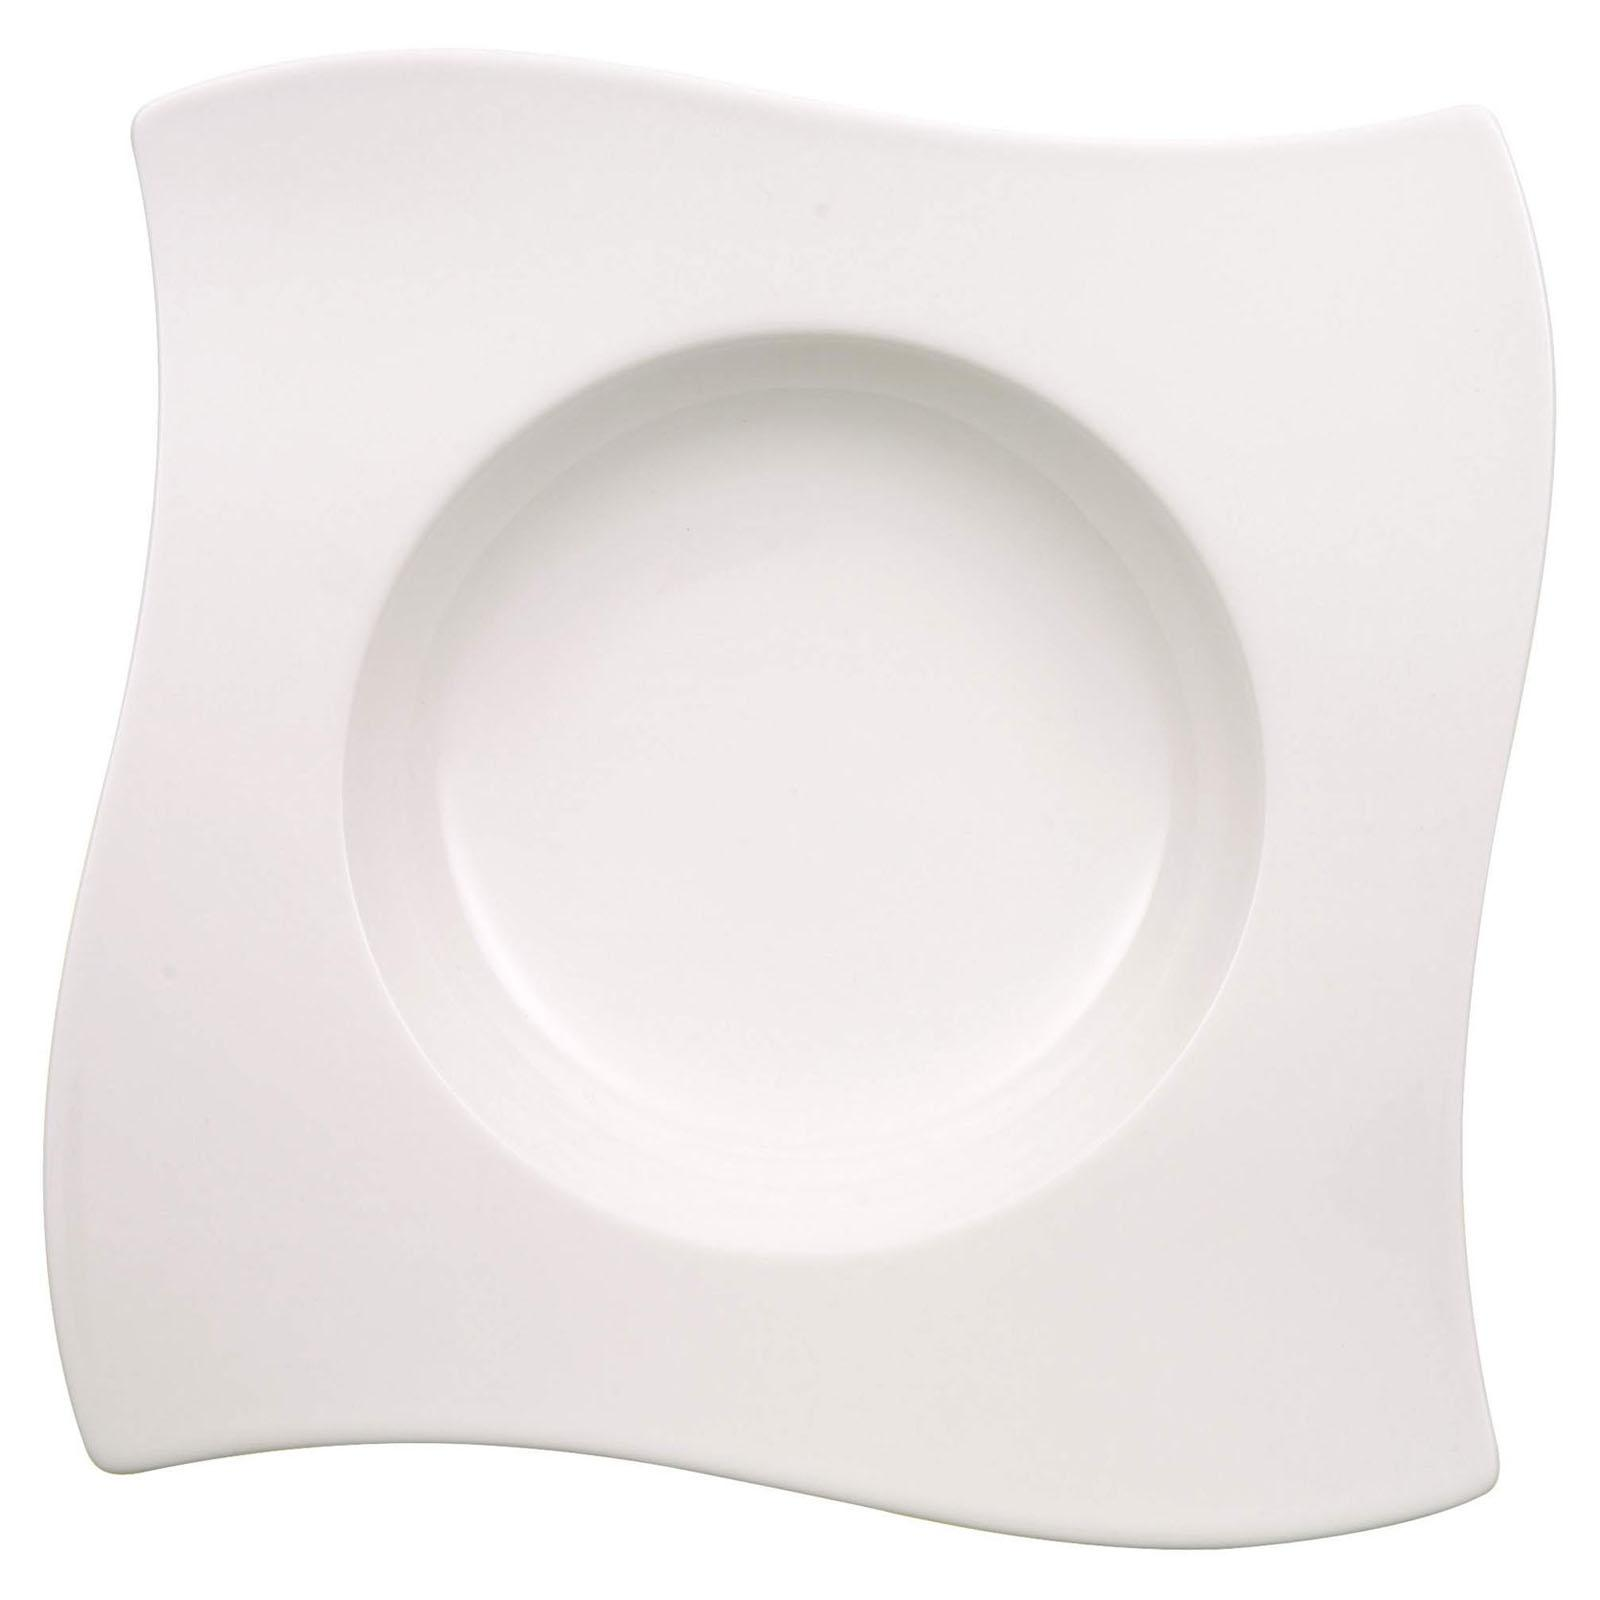 Villeroy and Boch New Wave Rim Soup Bowl - 1025252709